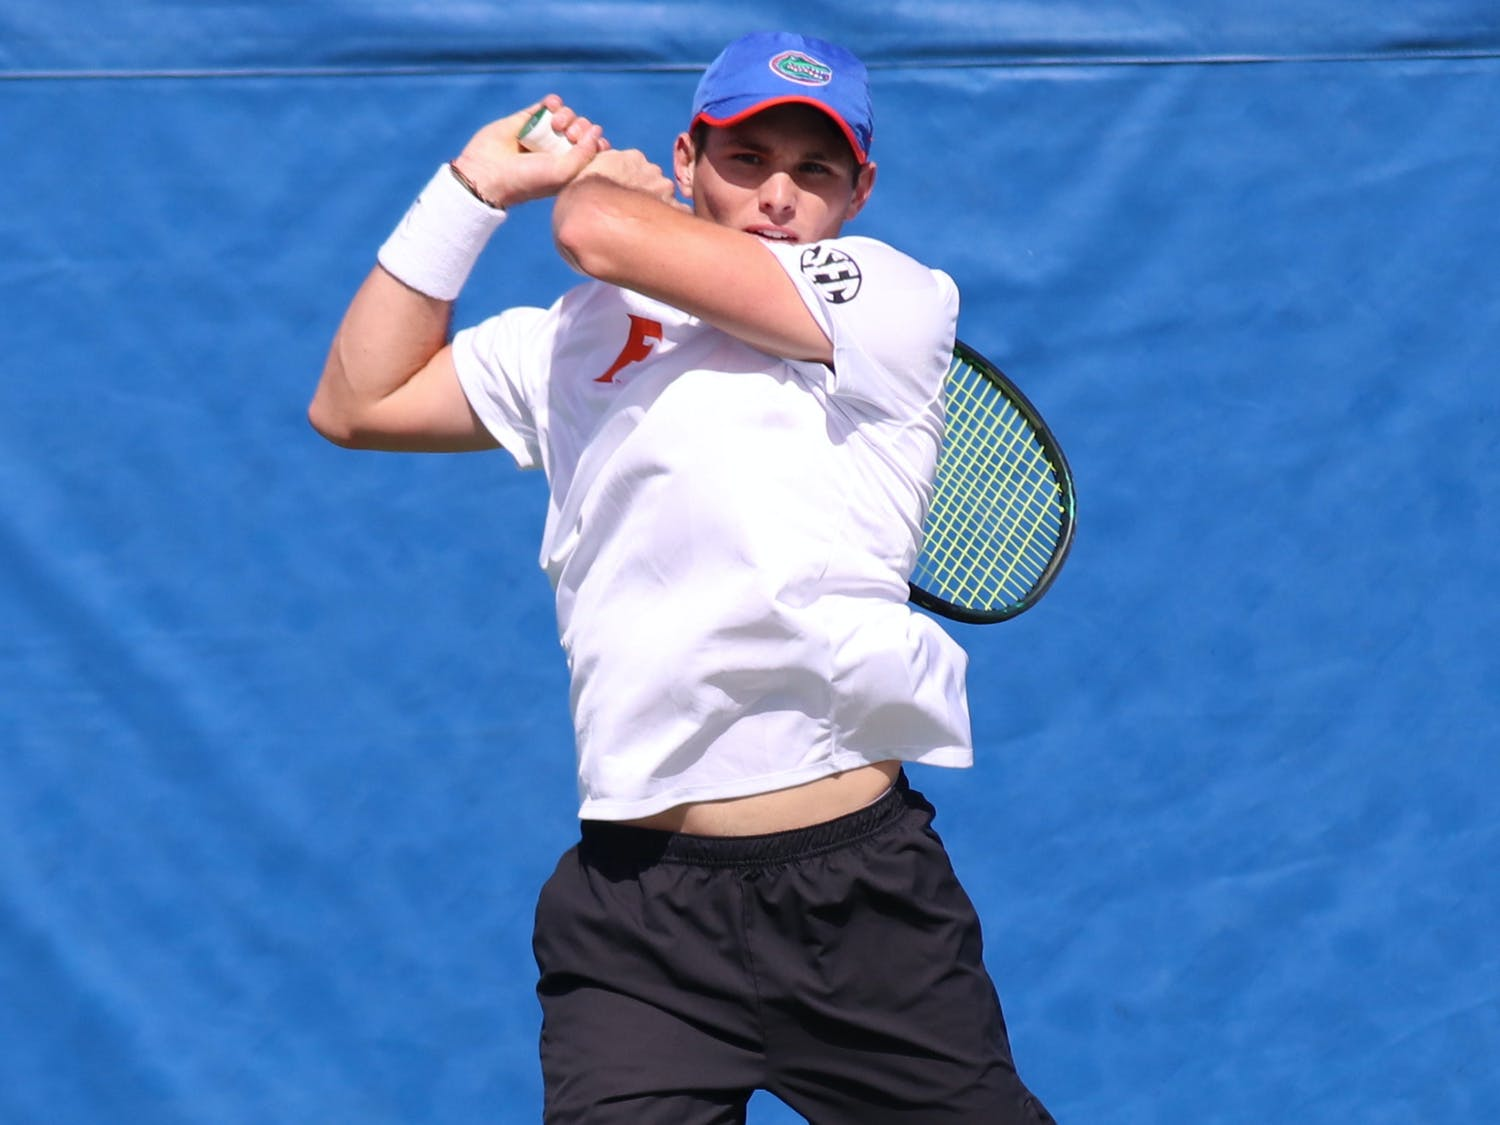 Team captain Sam Riffice and the rest of the Gators marked March 7 at the start of the season. Photo from UF-Auburn match Feb. 21.